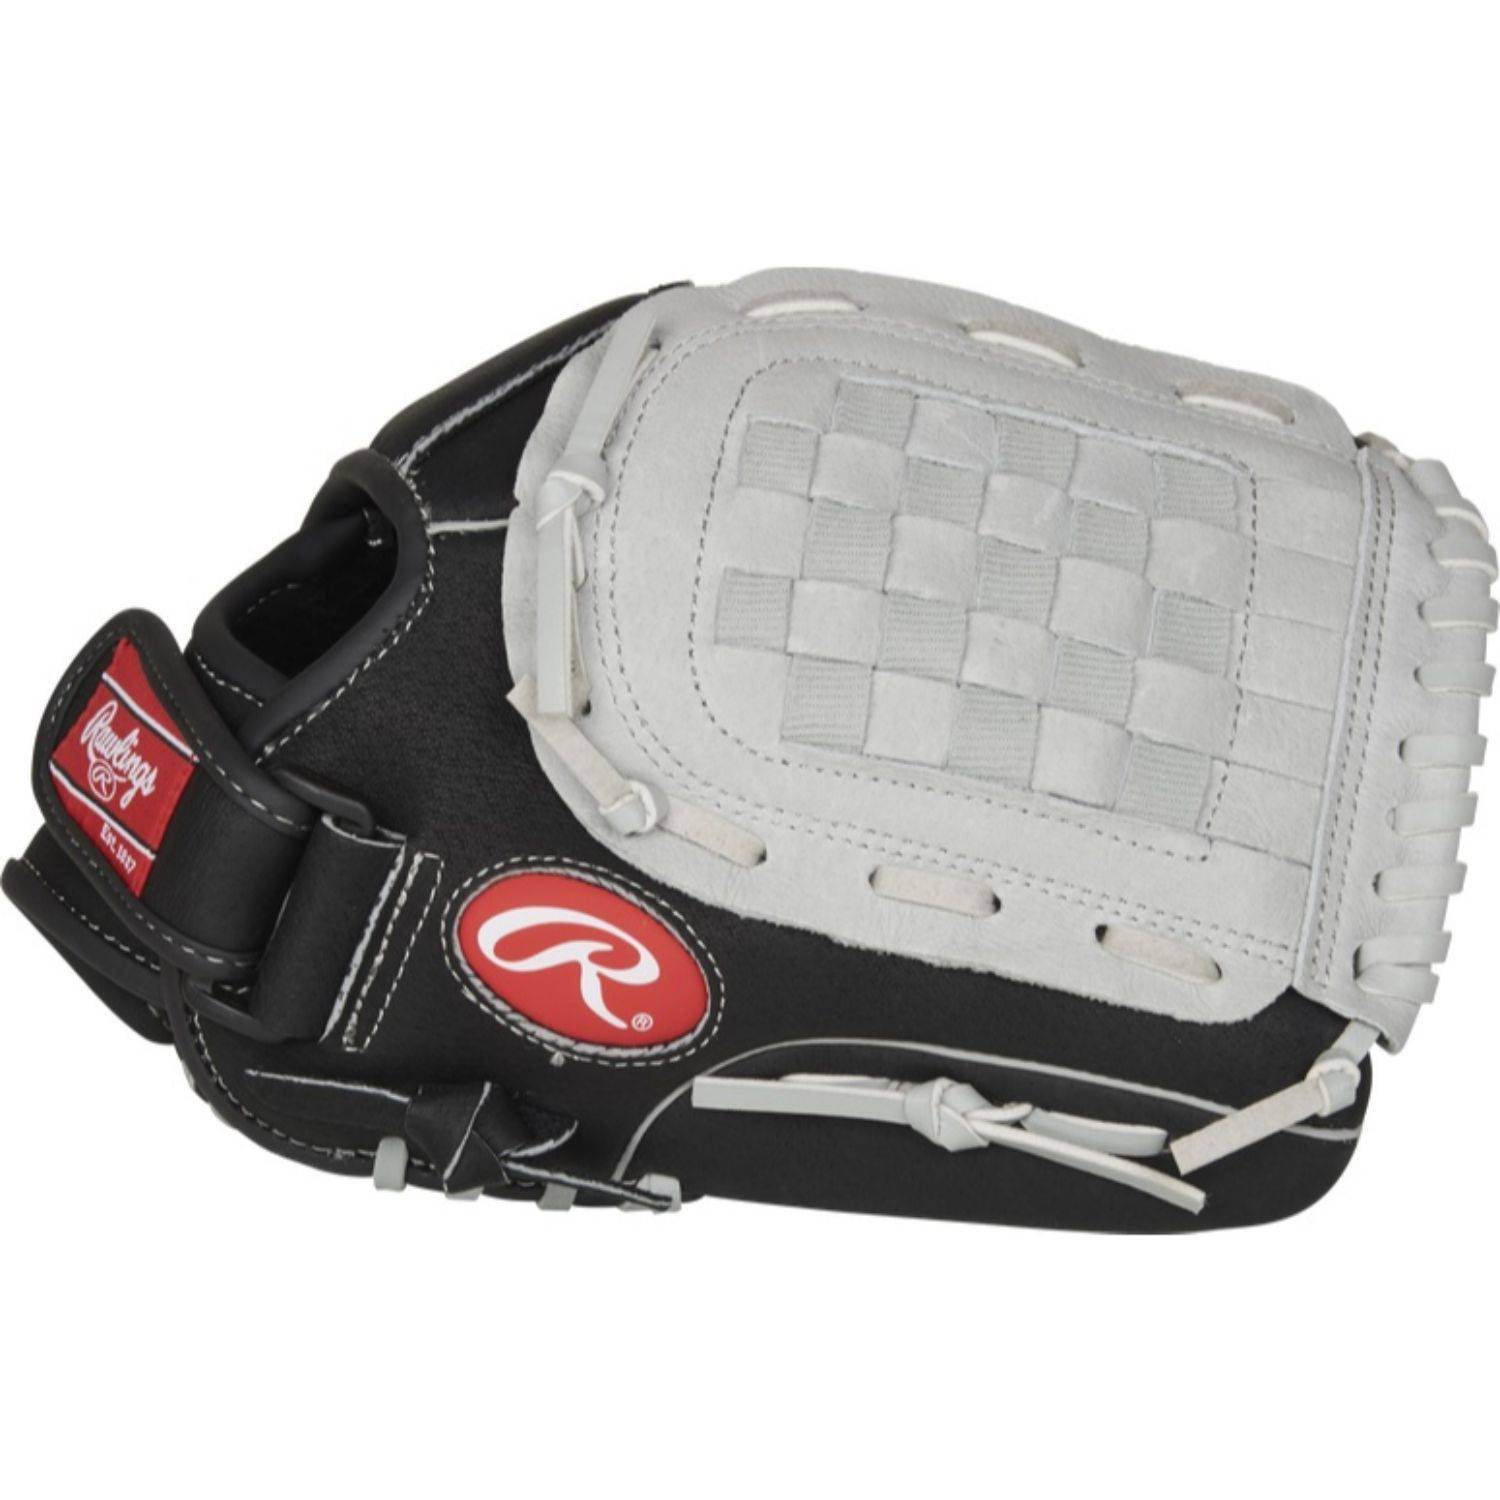 Rawlings 11.5 In Sure Catch Youth Infield Outfield Glove RH